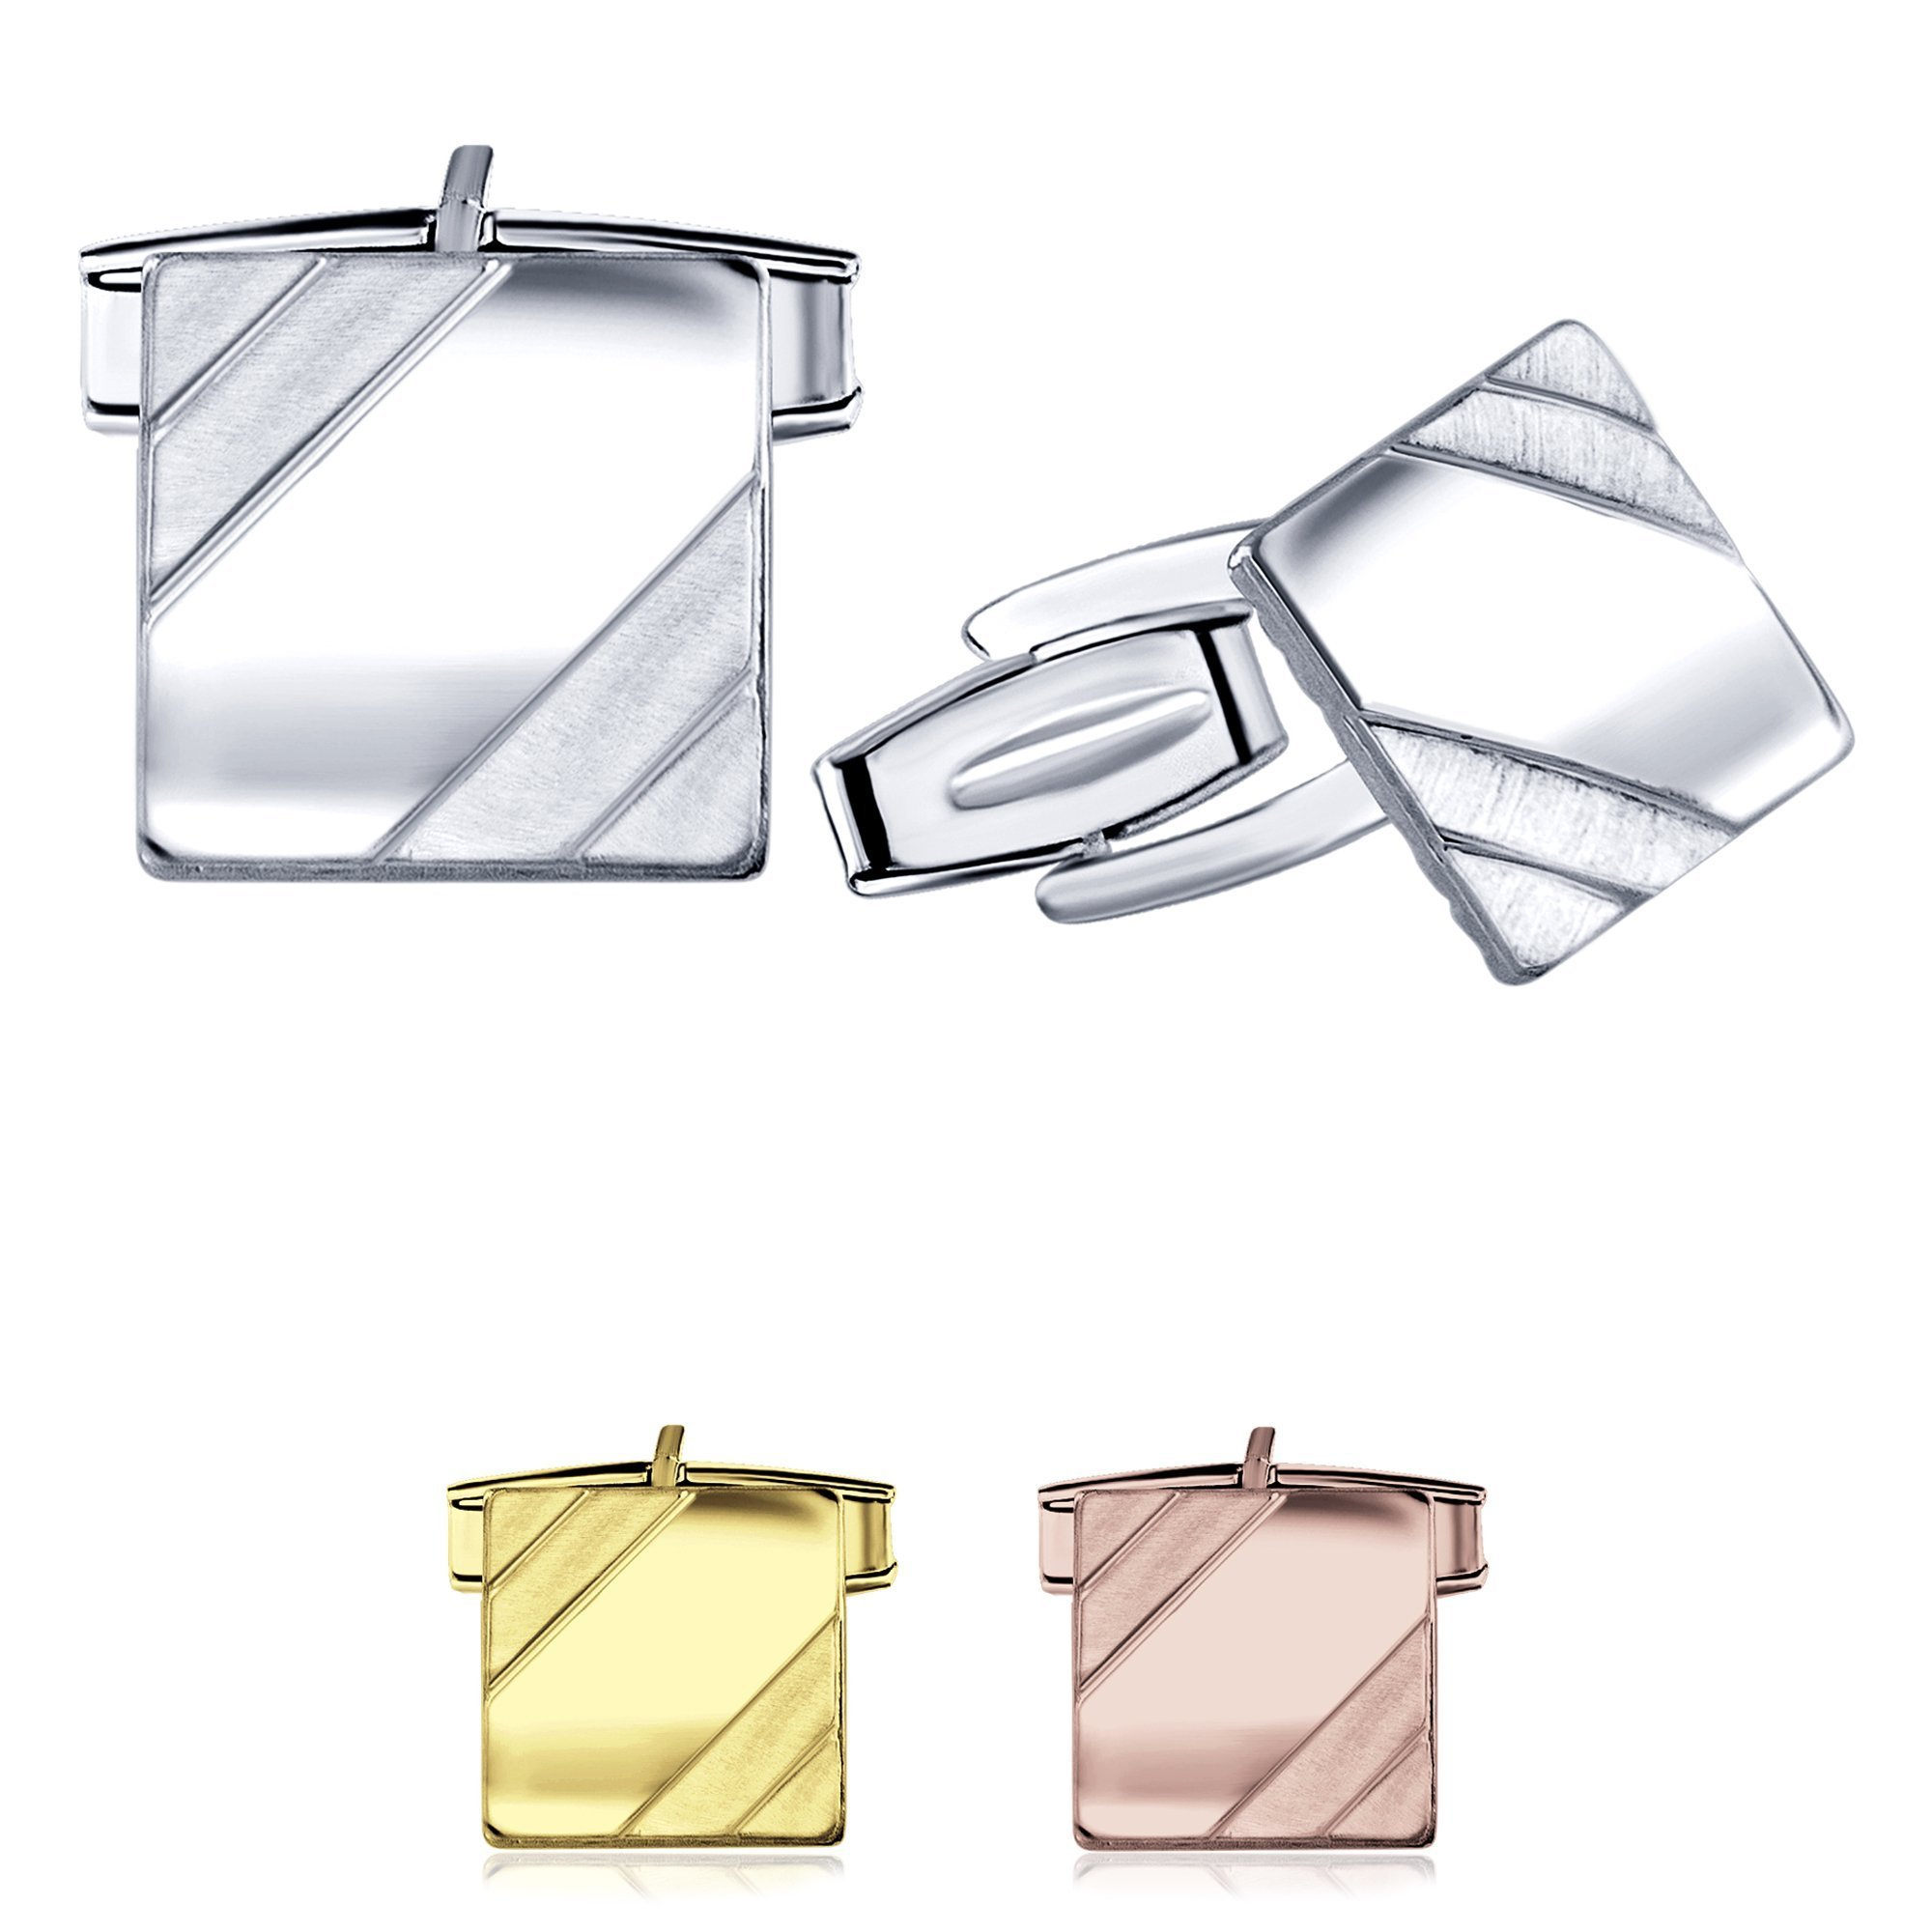 Men's Sterling Silver .925 Square Cufflinks with Satin Finish Accents in Two Corners, Engravable. Made In Italy. 14mm by Sterling Manufacturers (Image #1)